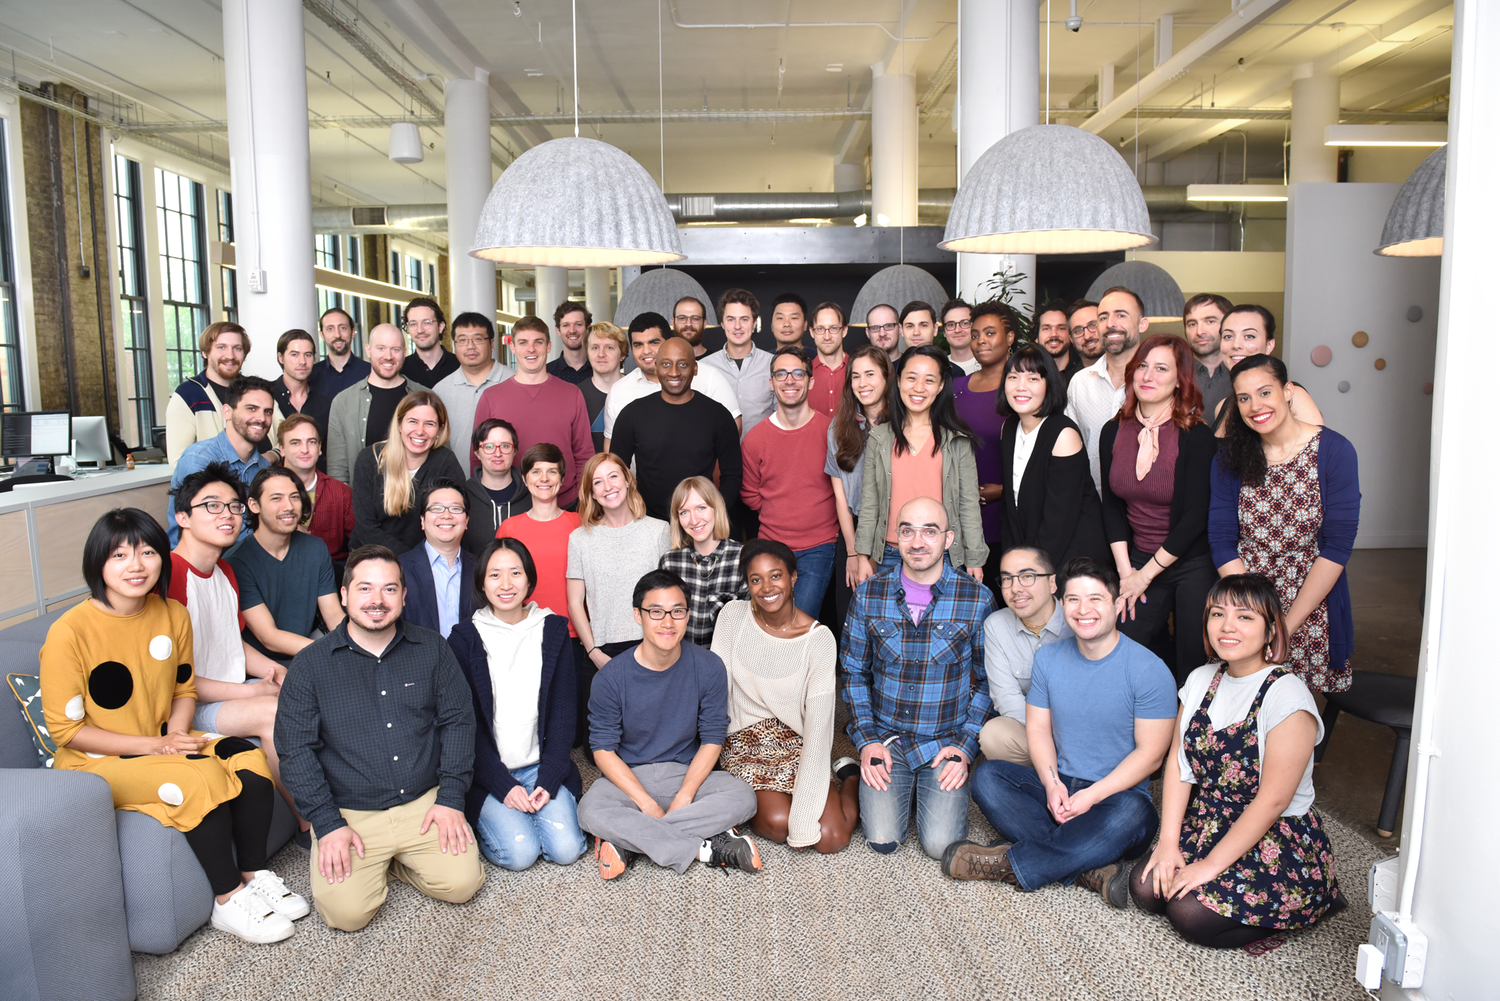 Group photo of employees in the Dots office